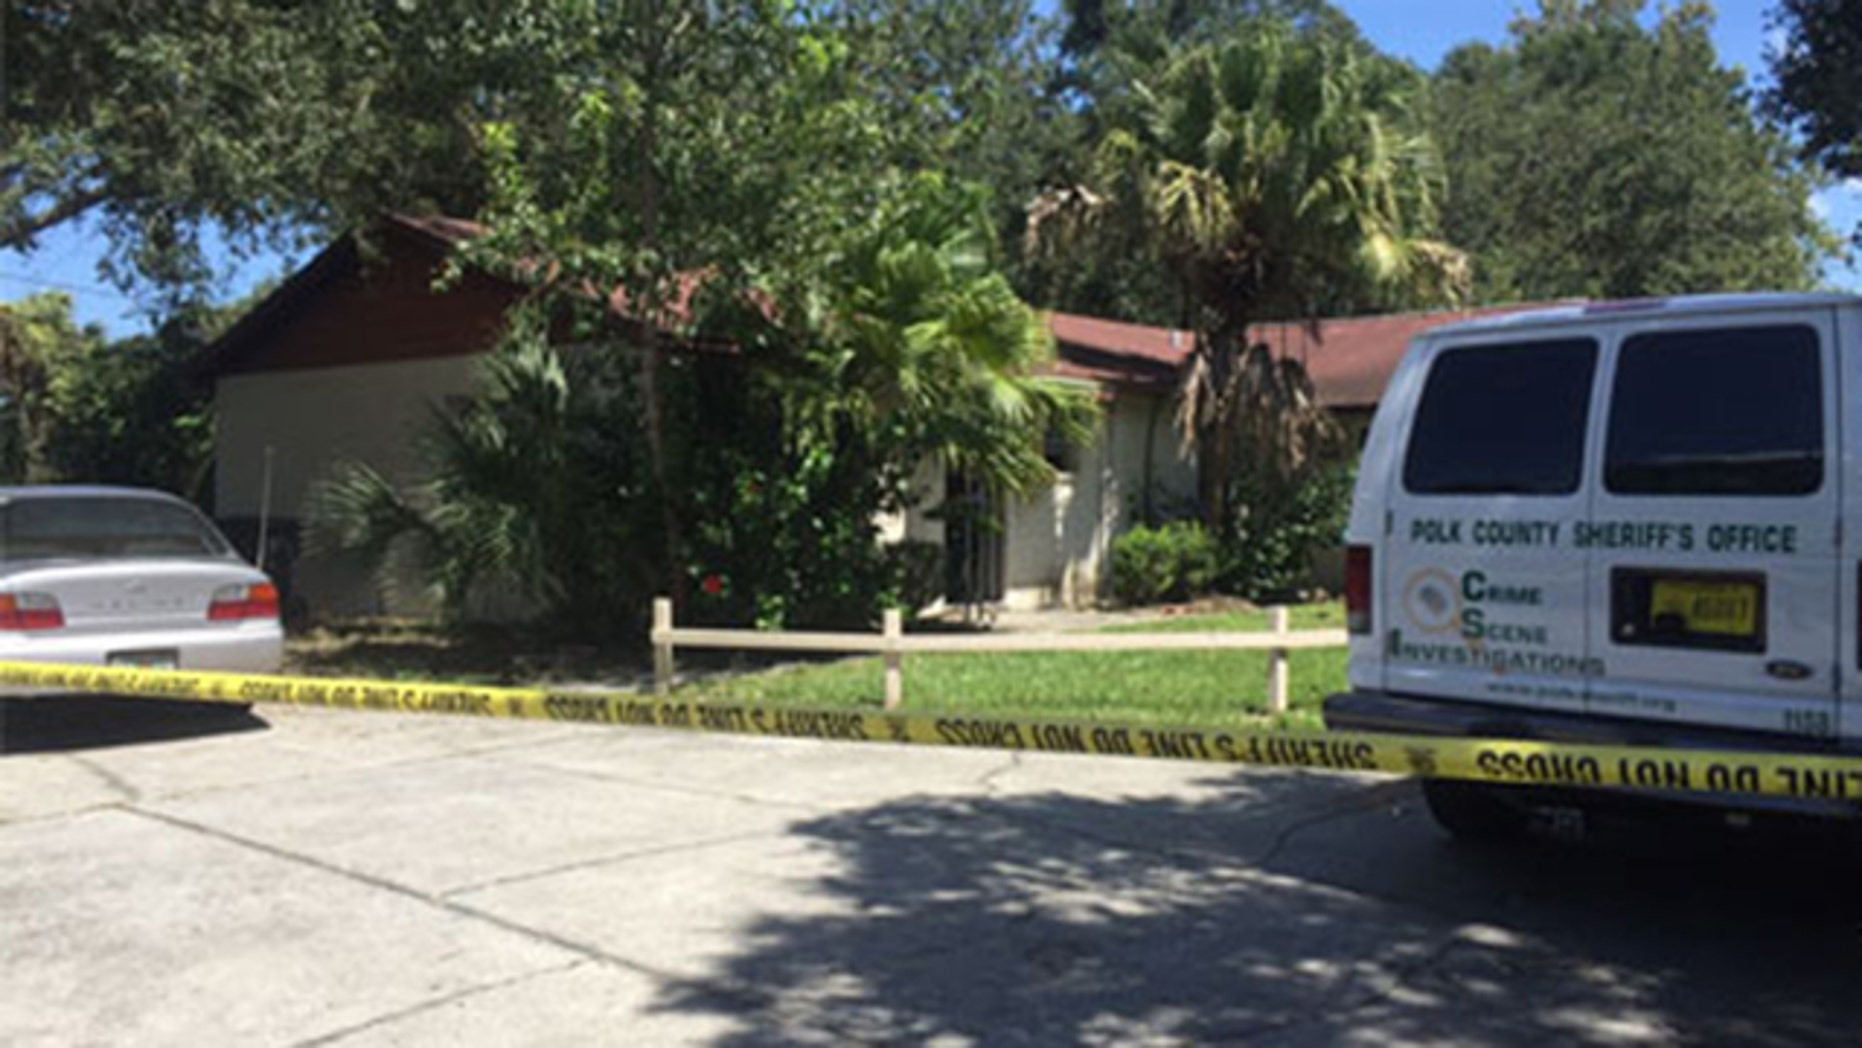 A 7-year-old girl in Florida likely died from carbon monoxide poisoning in her sleep, according to reports.